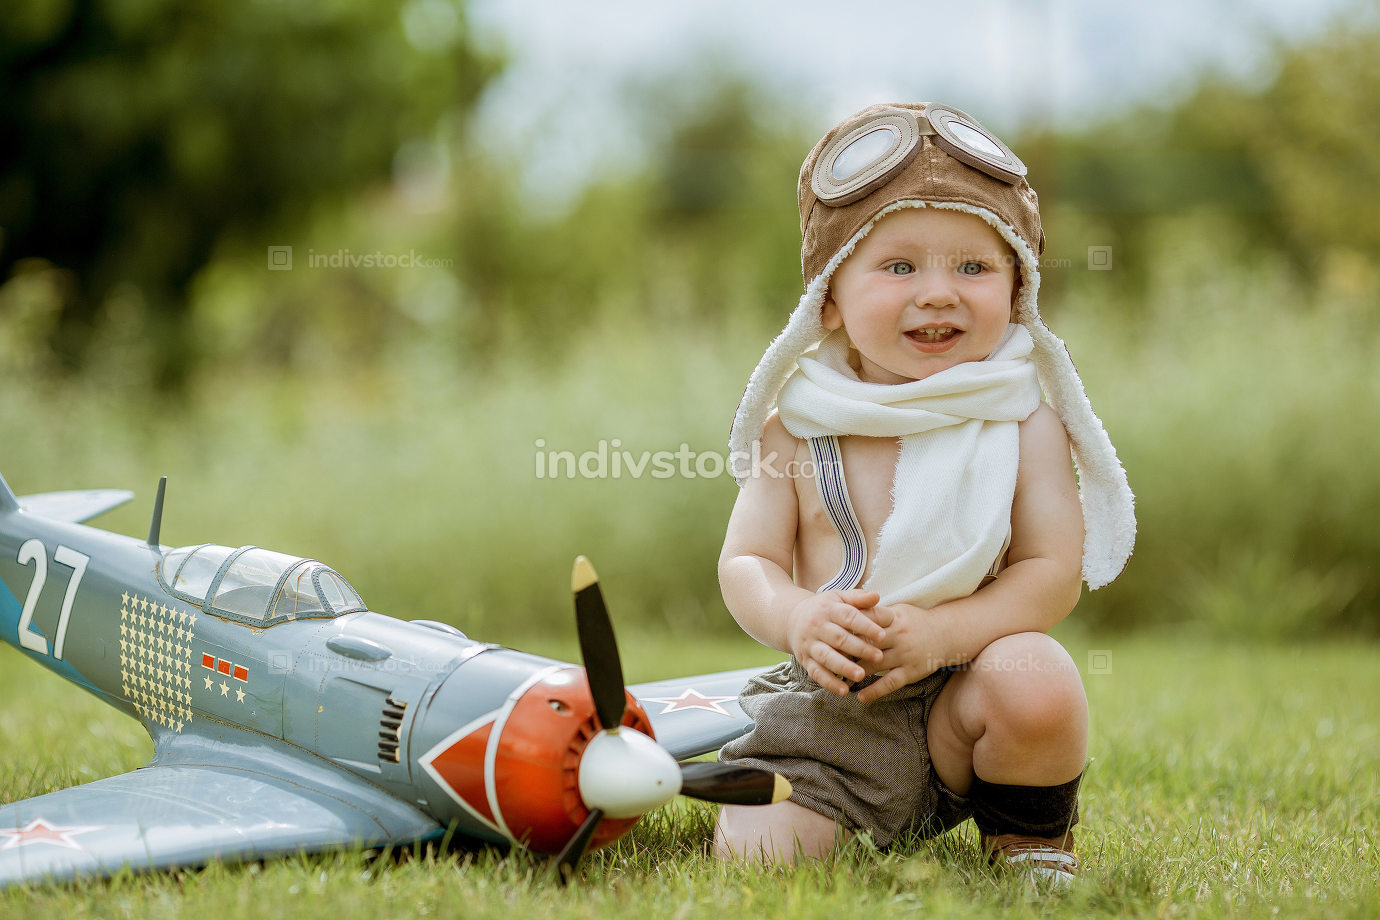 Child pilot. Kid playing outdoors. Kid pilot with toy jetpack